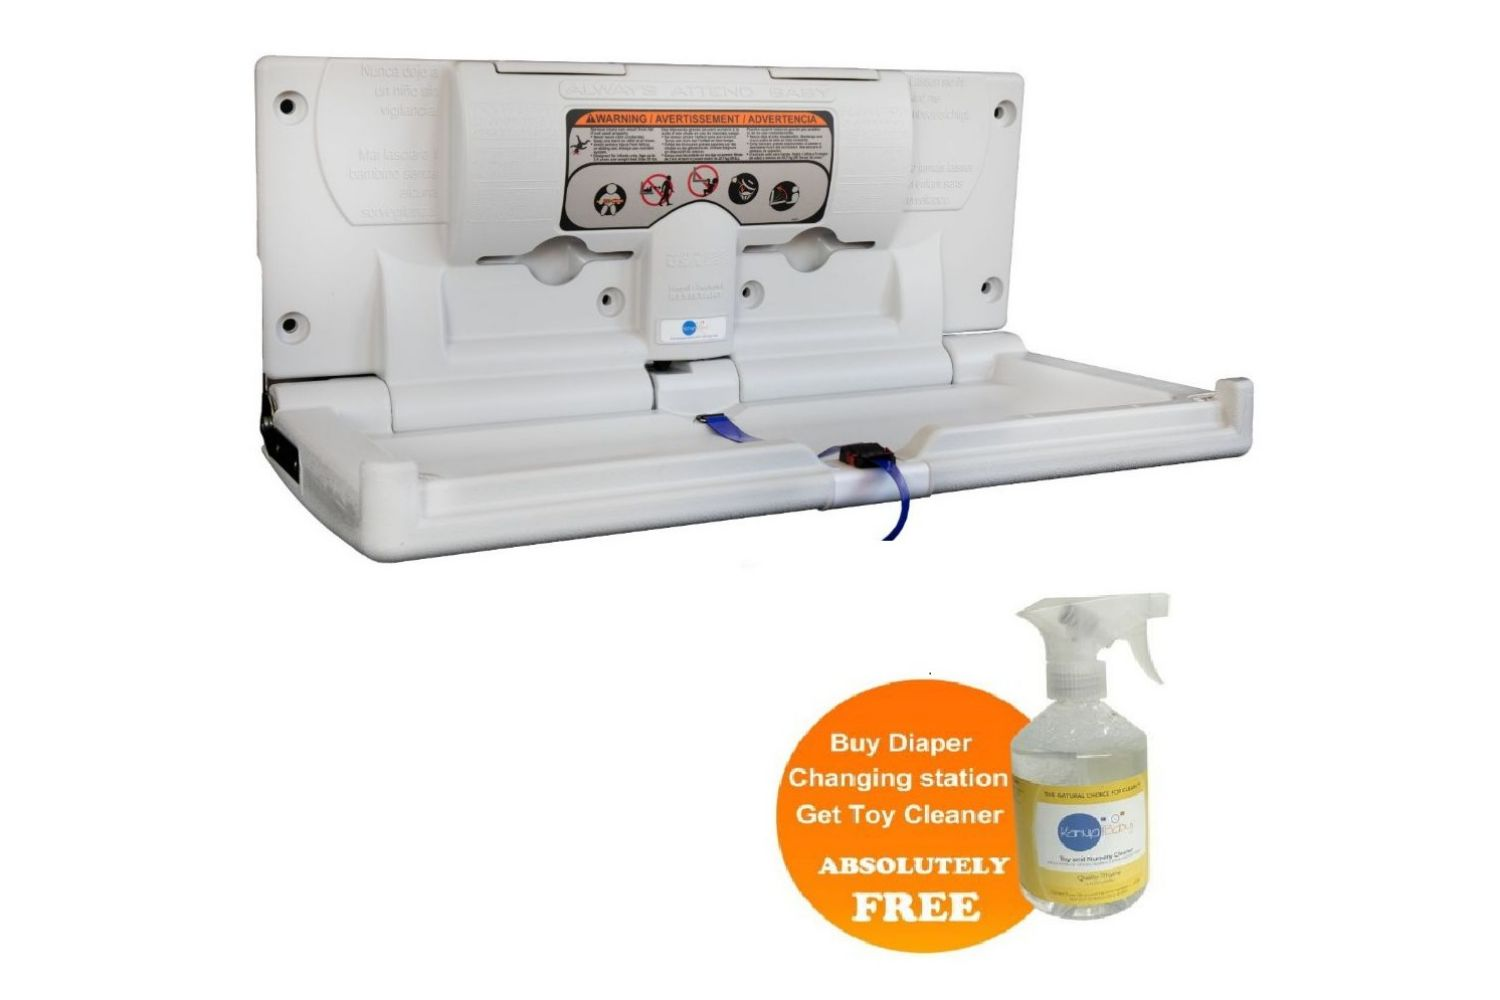 Karma Baby Horizontal Diaper Changing Station w/ a Free 1 Bottle of Natural Toy and Nursery Cleaner - 16 FL OZ